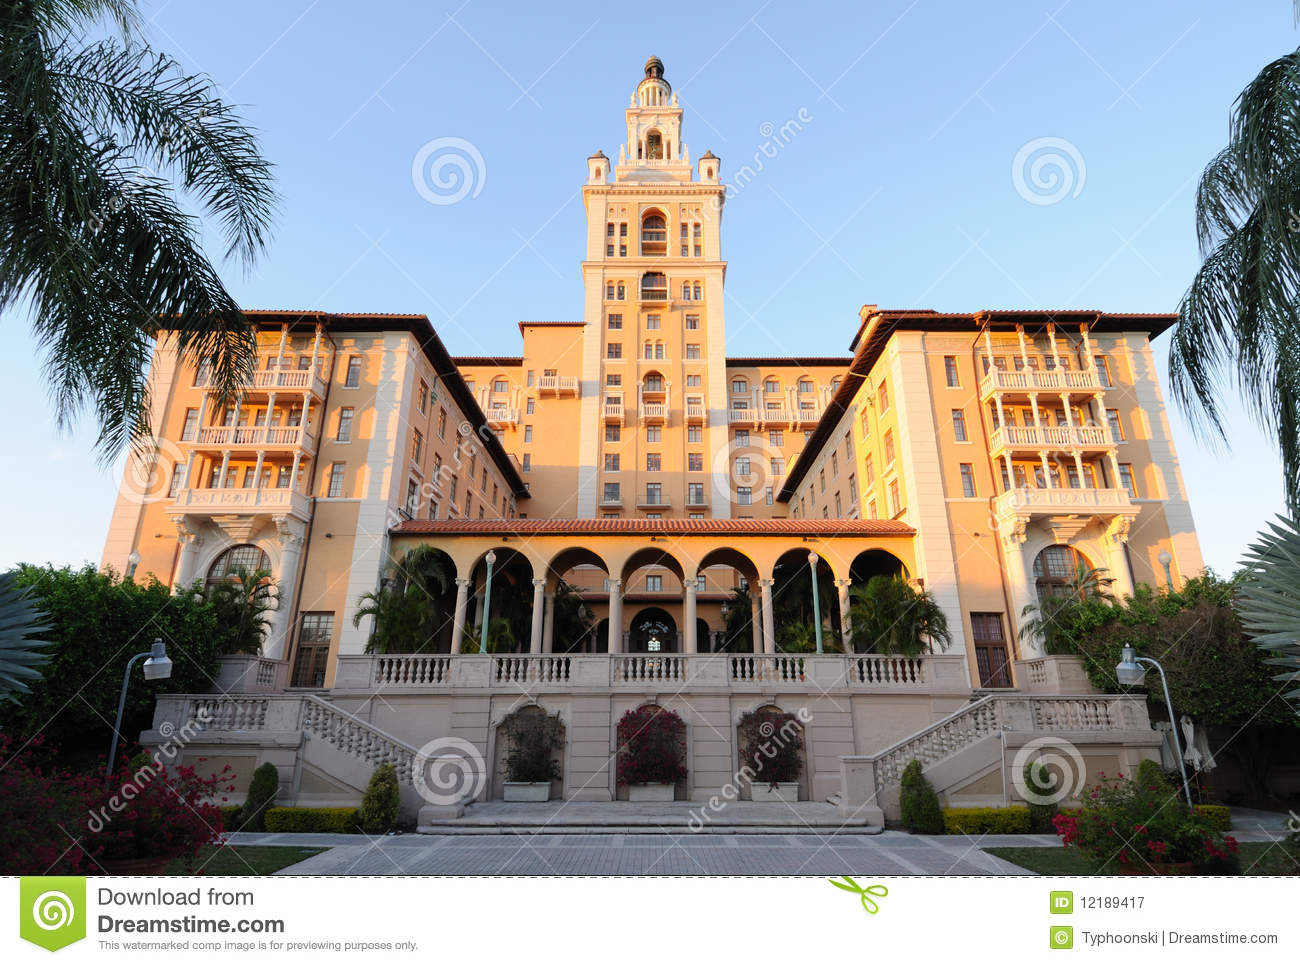 Historic Biltmore Hotel In Miami Royalty Free Stock